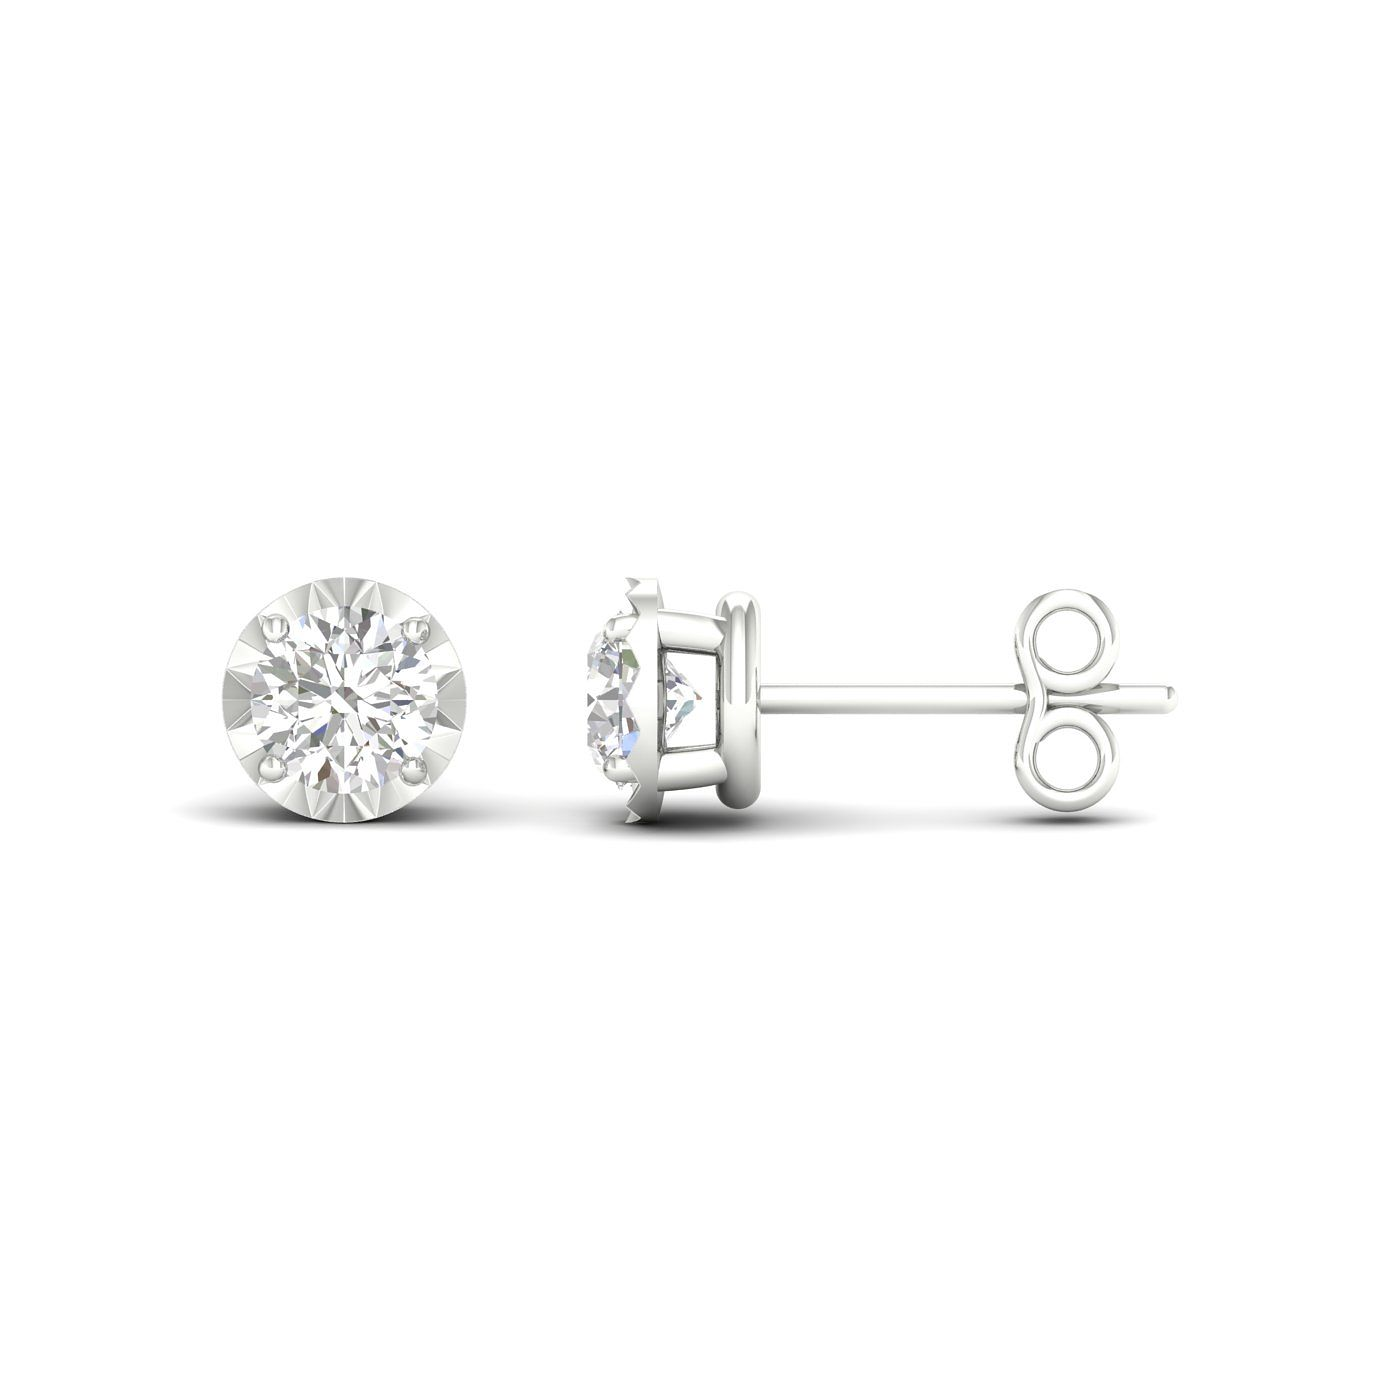 9ct White Gold 0.15ct Diamond Stud Earrings - Product number 1171909